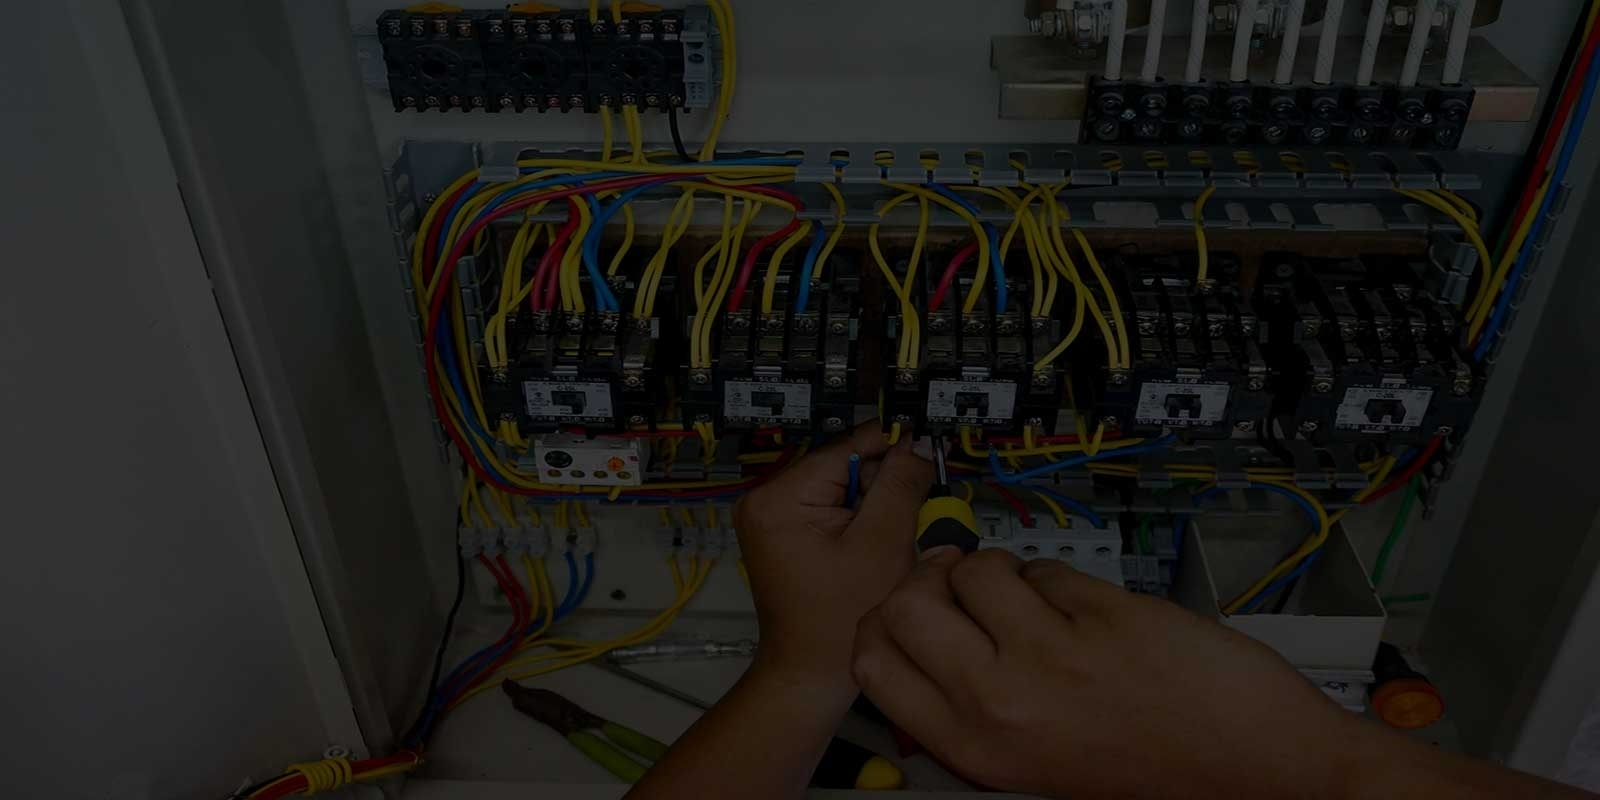 Woodmead electricians backgroundr